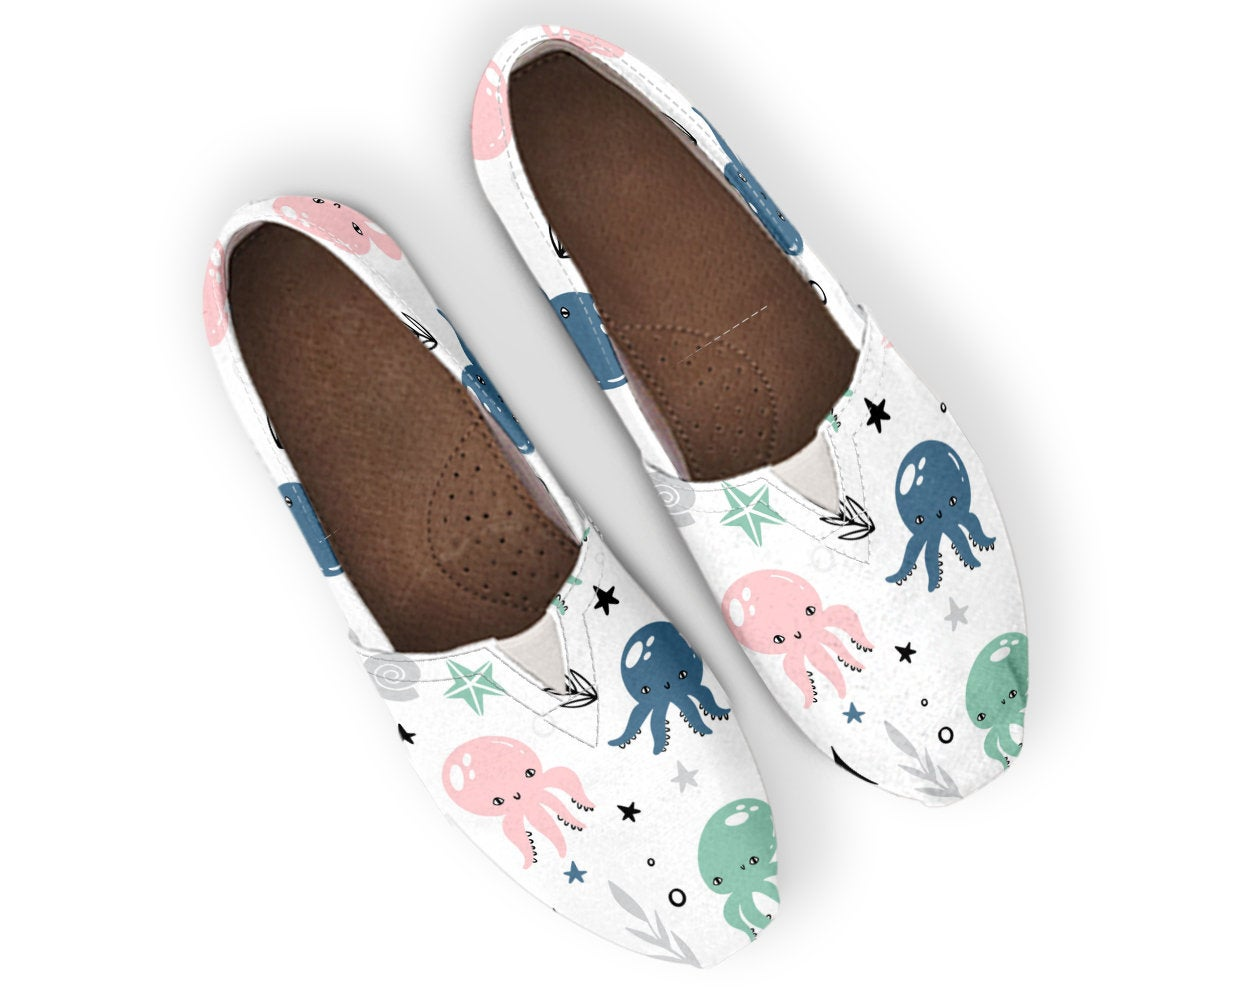 Cute Shoes Octopus  Print Canvas Women Shoes Casual Shoes Girls Slip Ons Cute Octopus Shoes Octopus Lover Gifts Womens Shoes